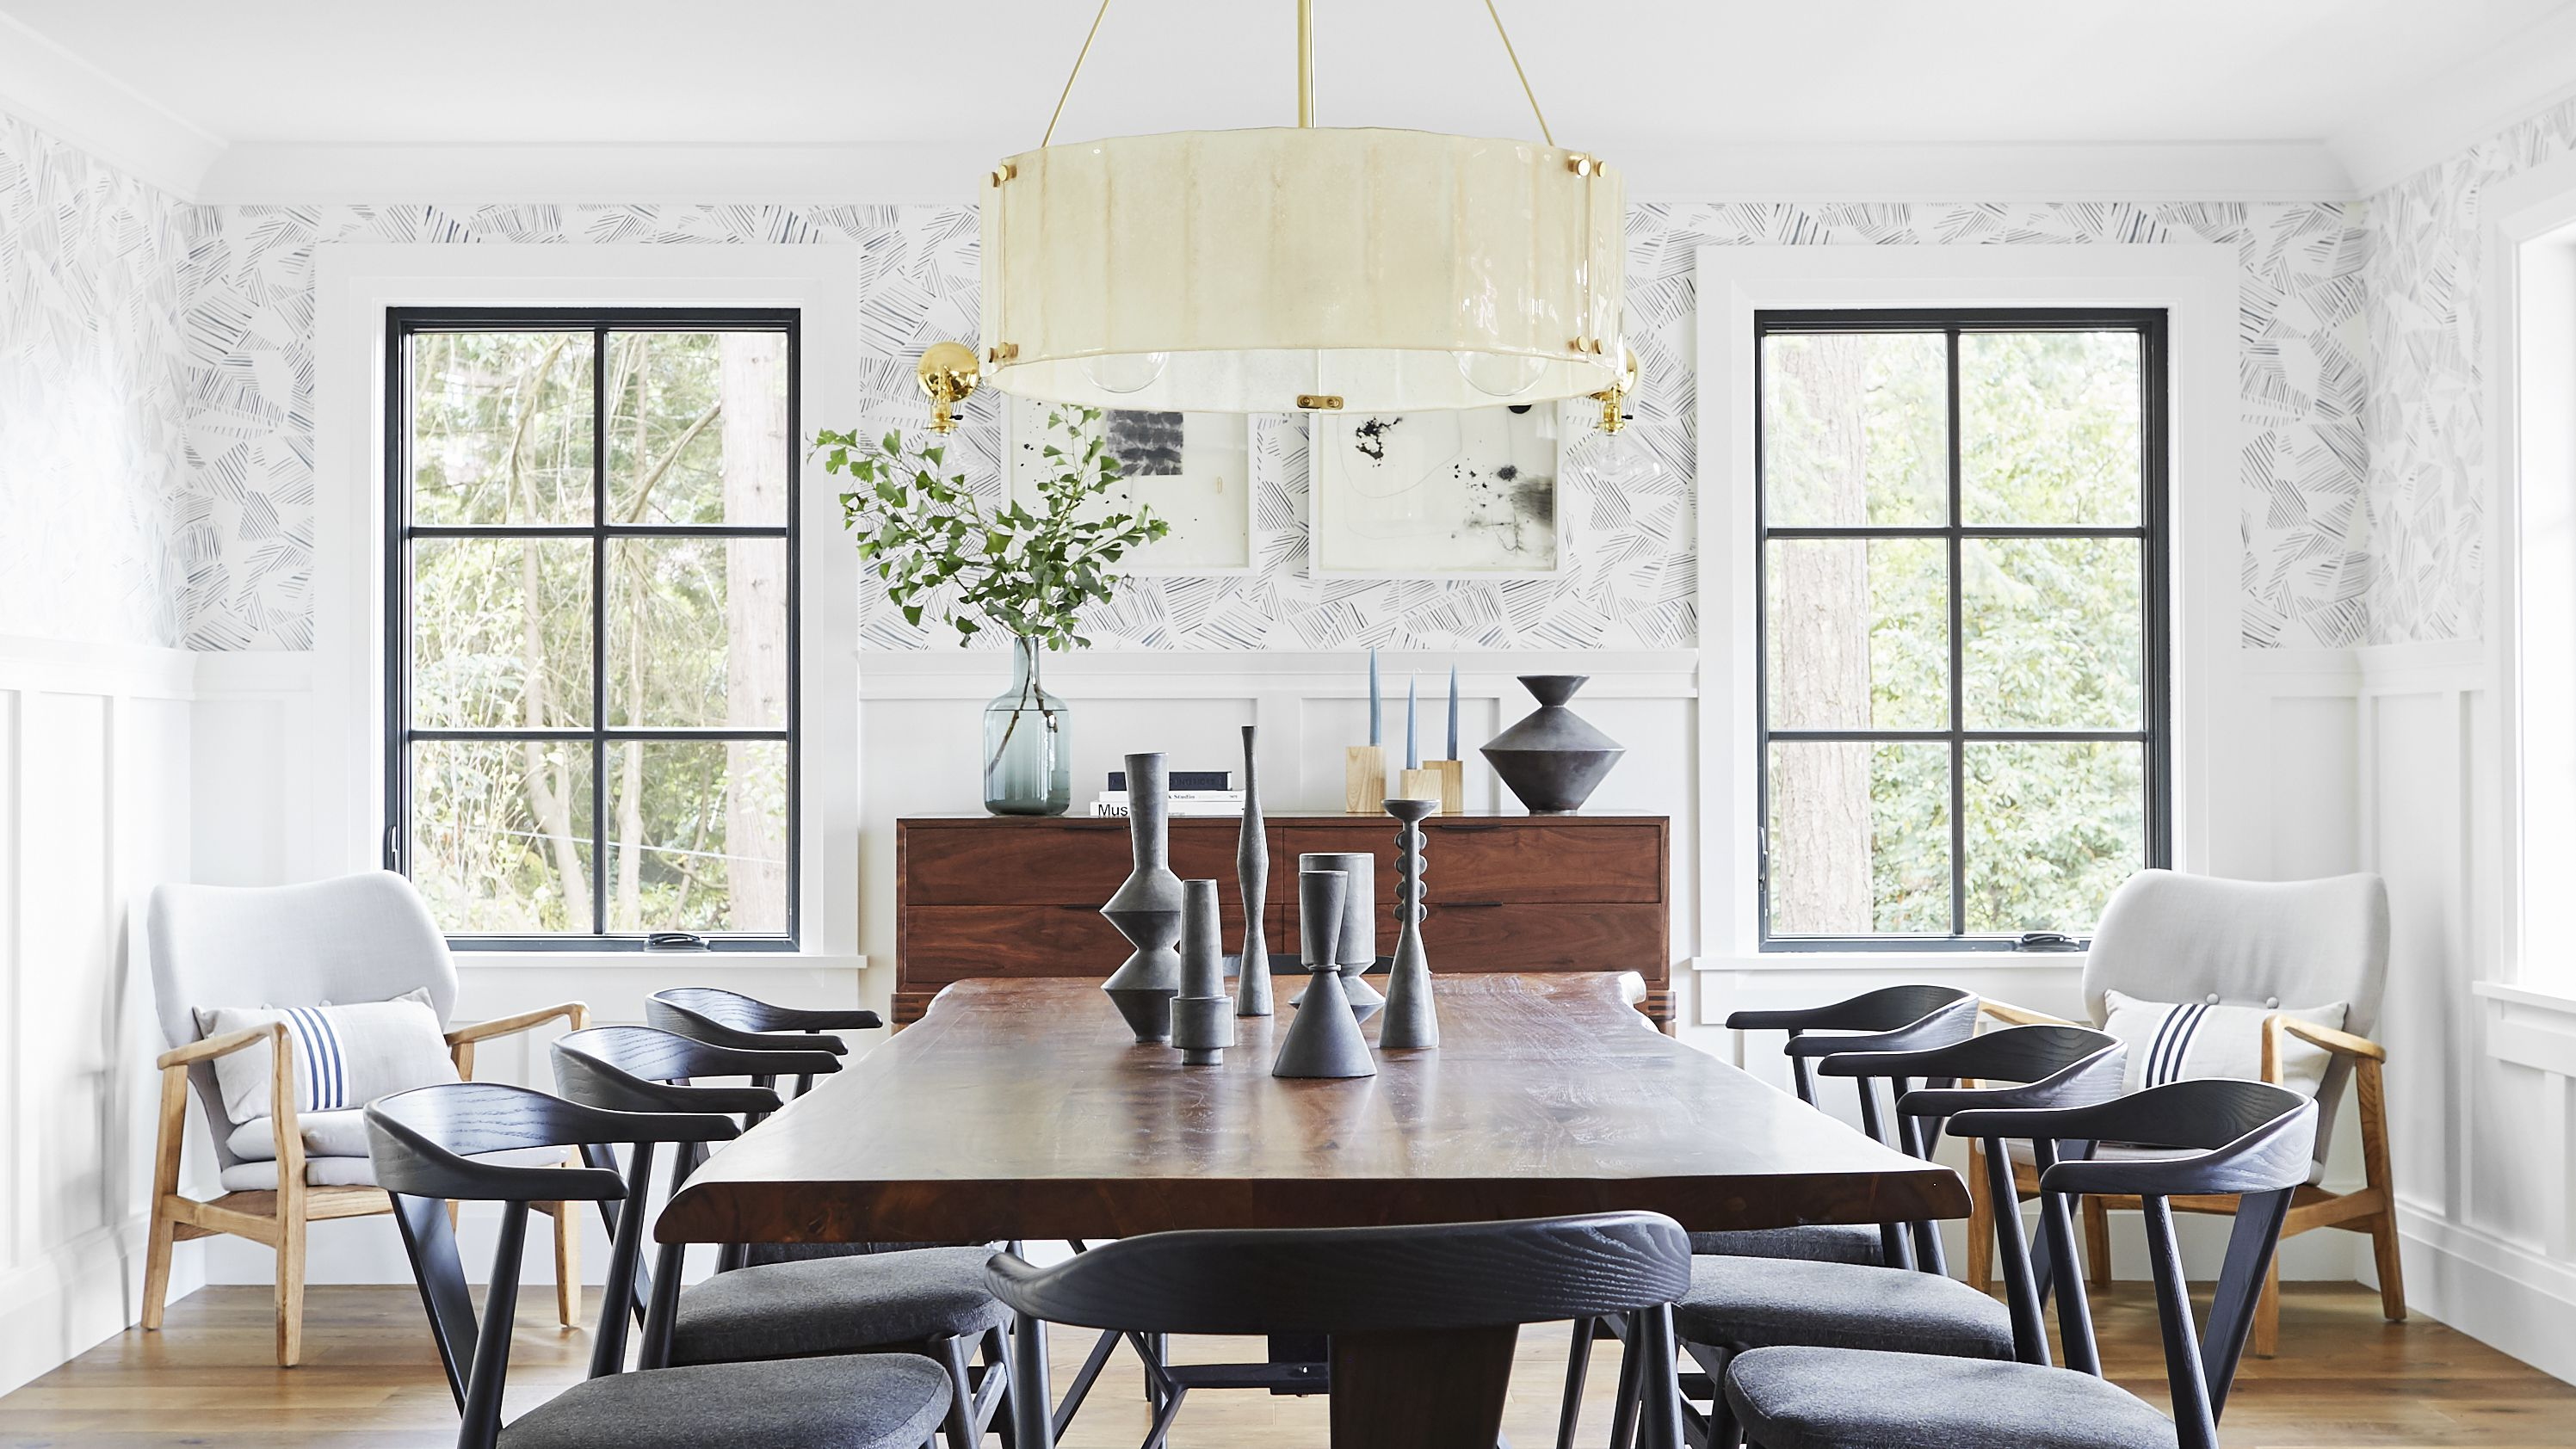 13 Dining Room Lighting Ideas To Brighten Up Your Space